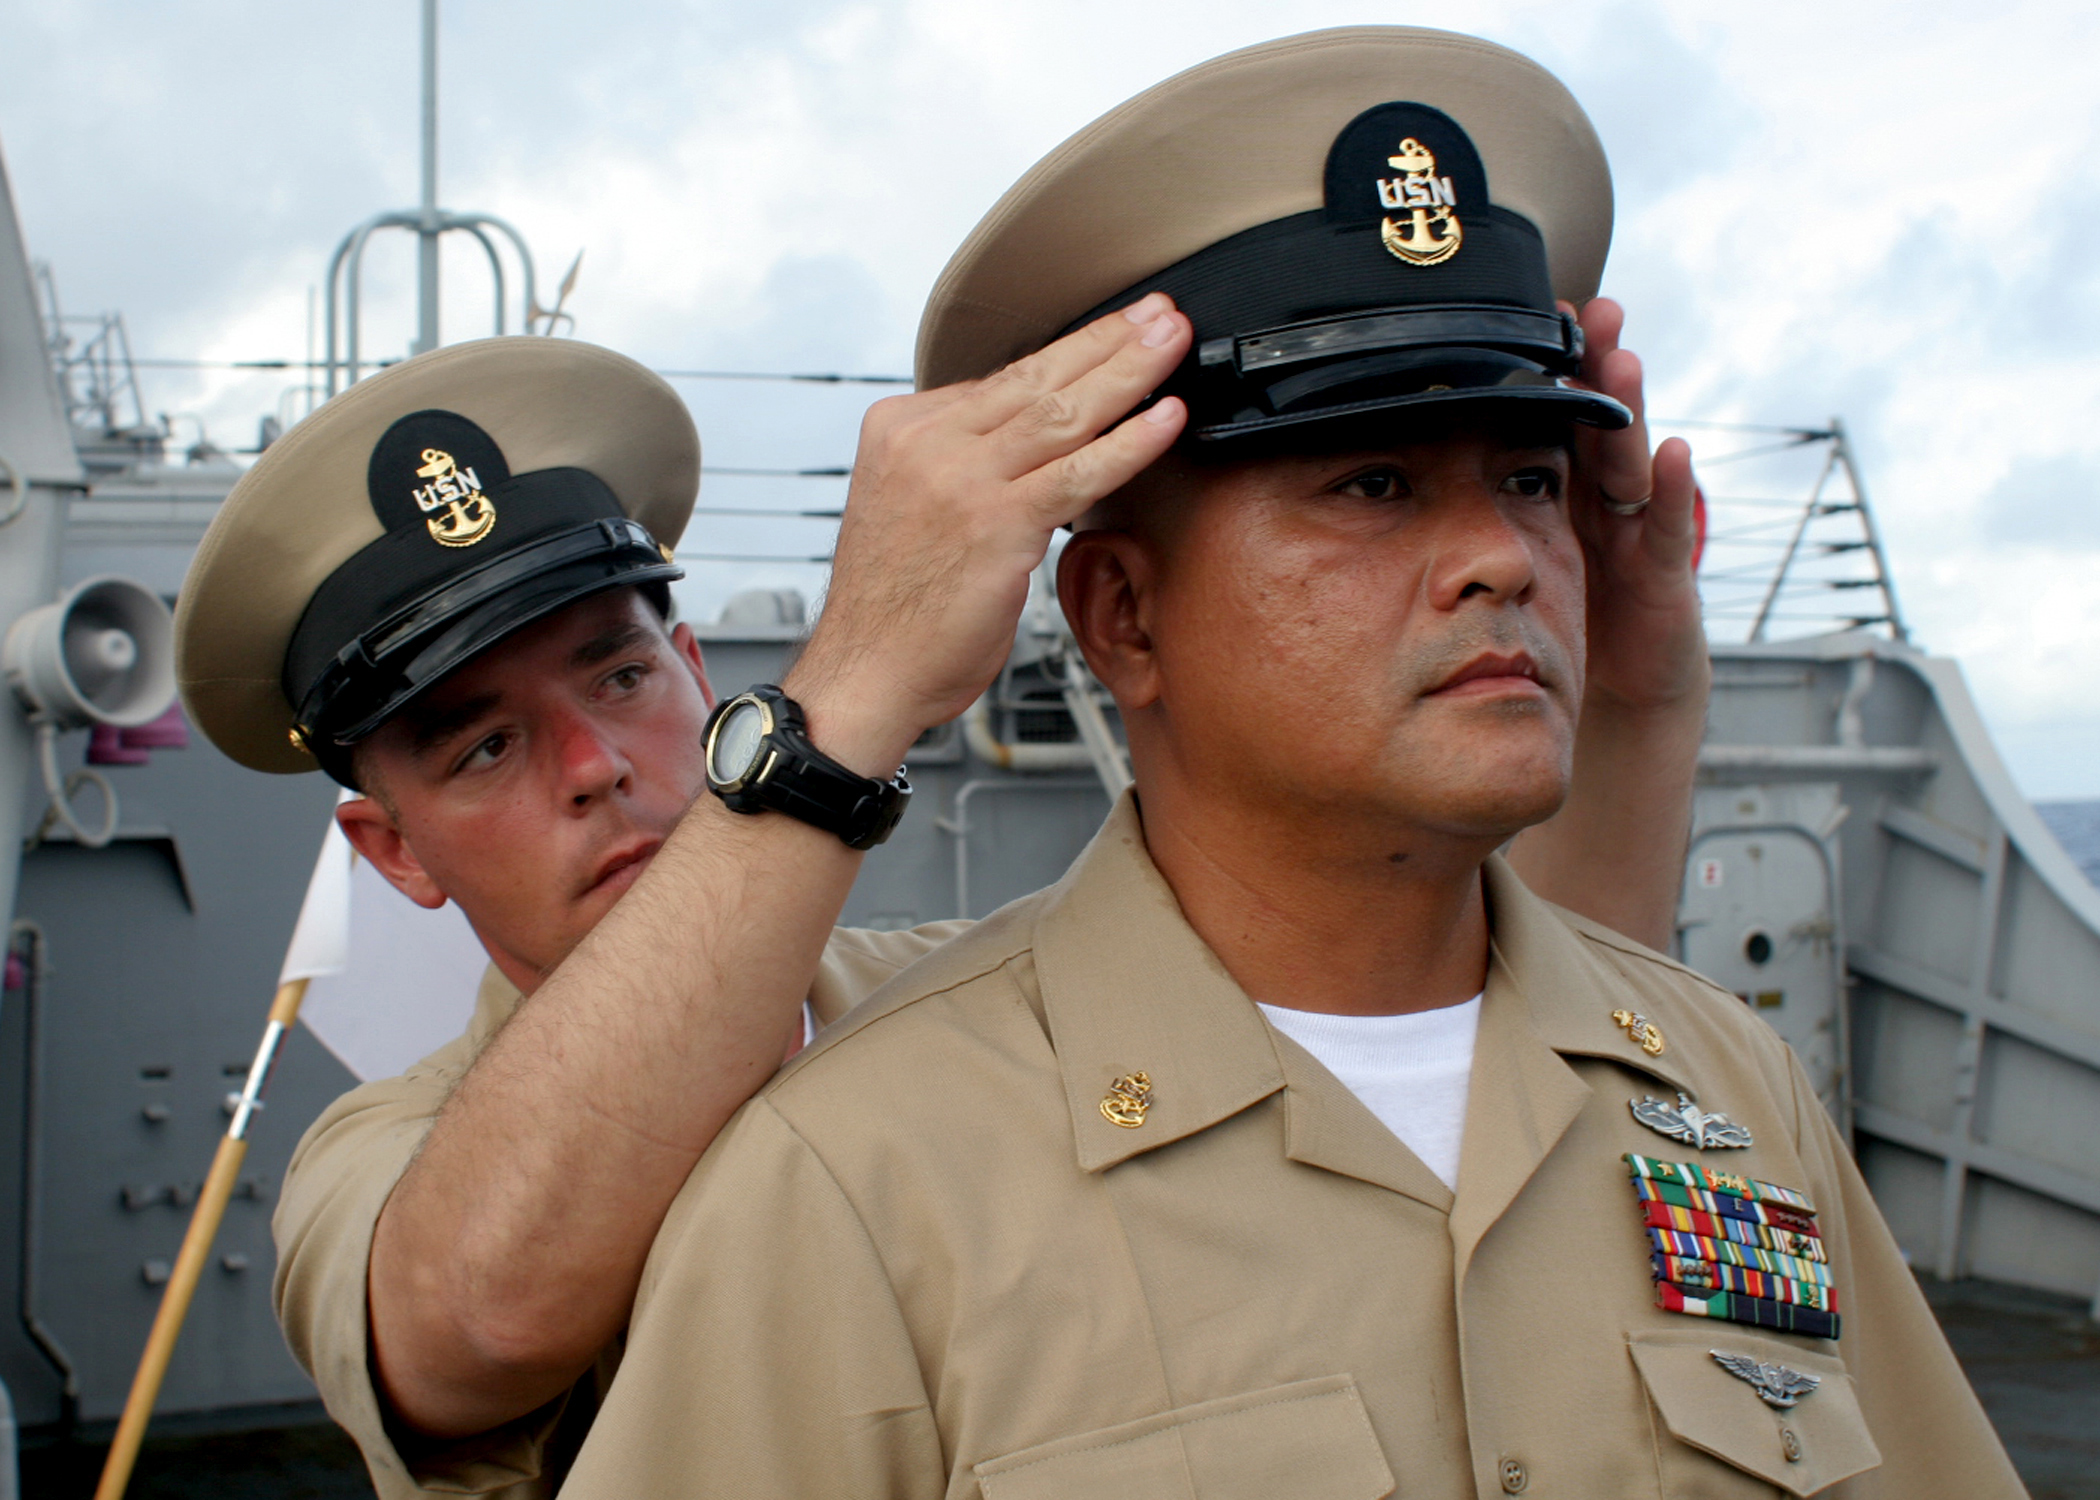 File:US Navy 070921-N-4953E-005 Chief Yeoman Alex Magee puts the ...